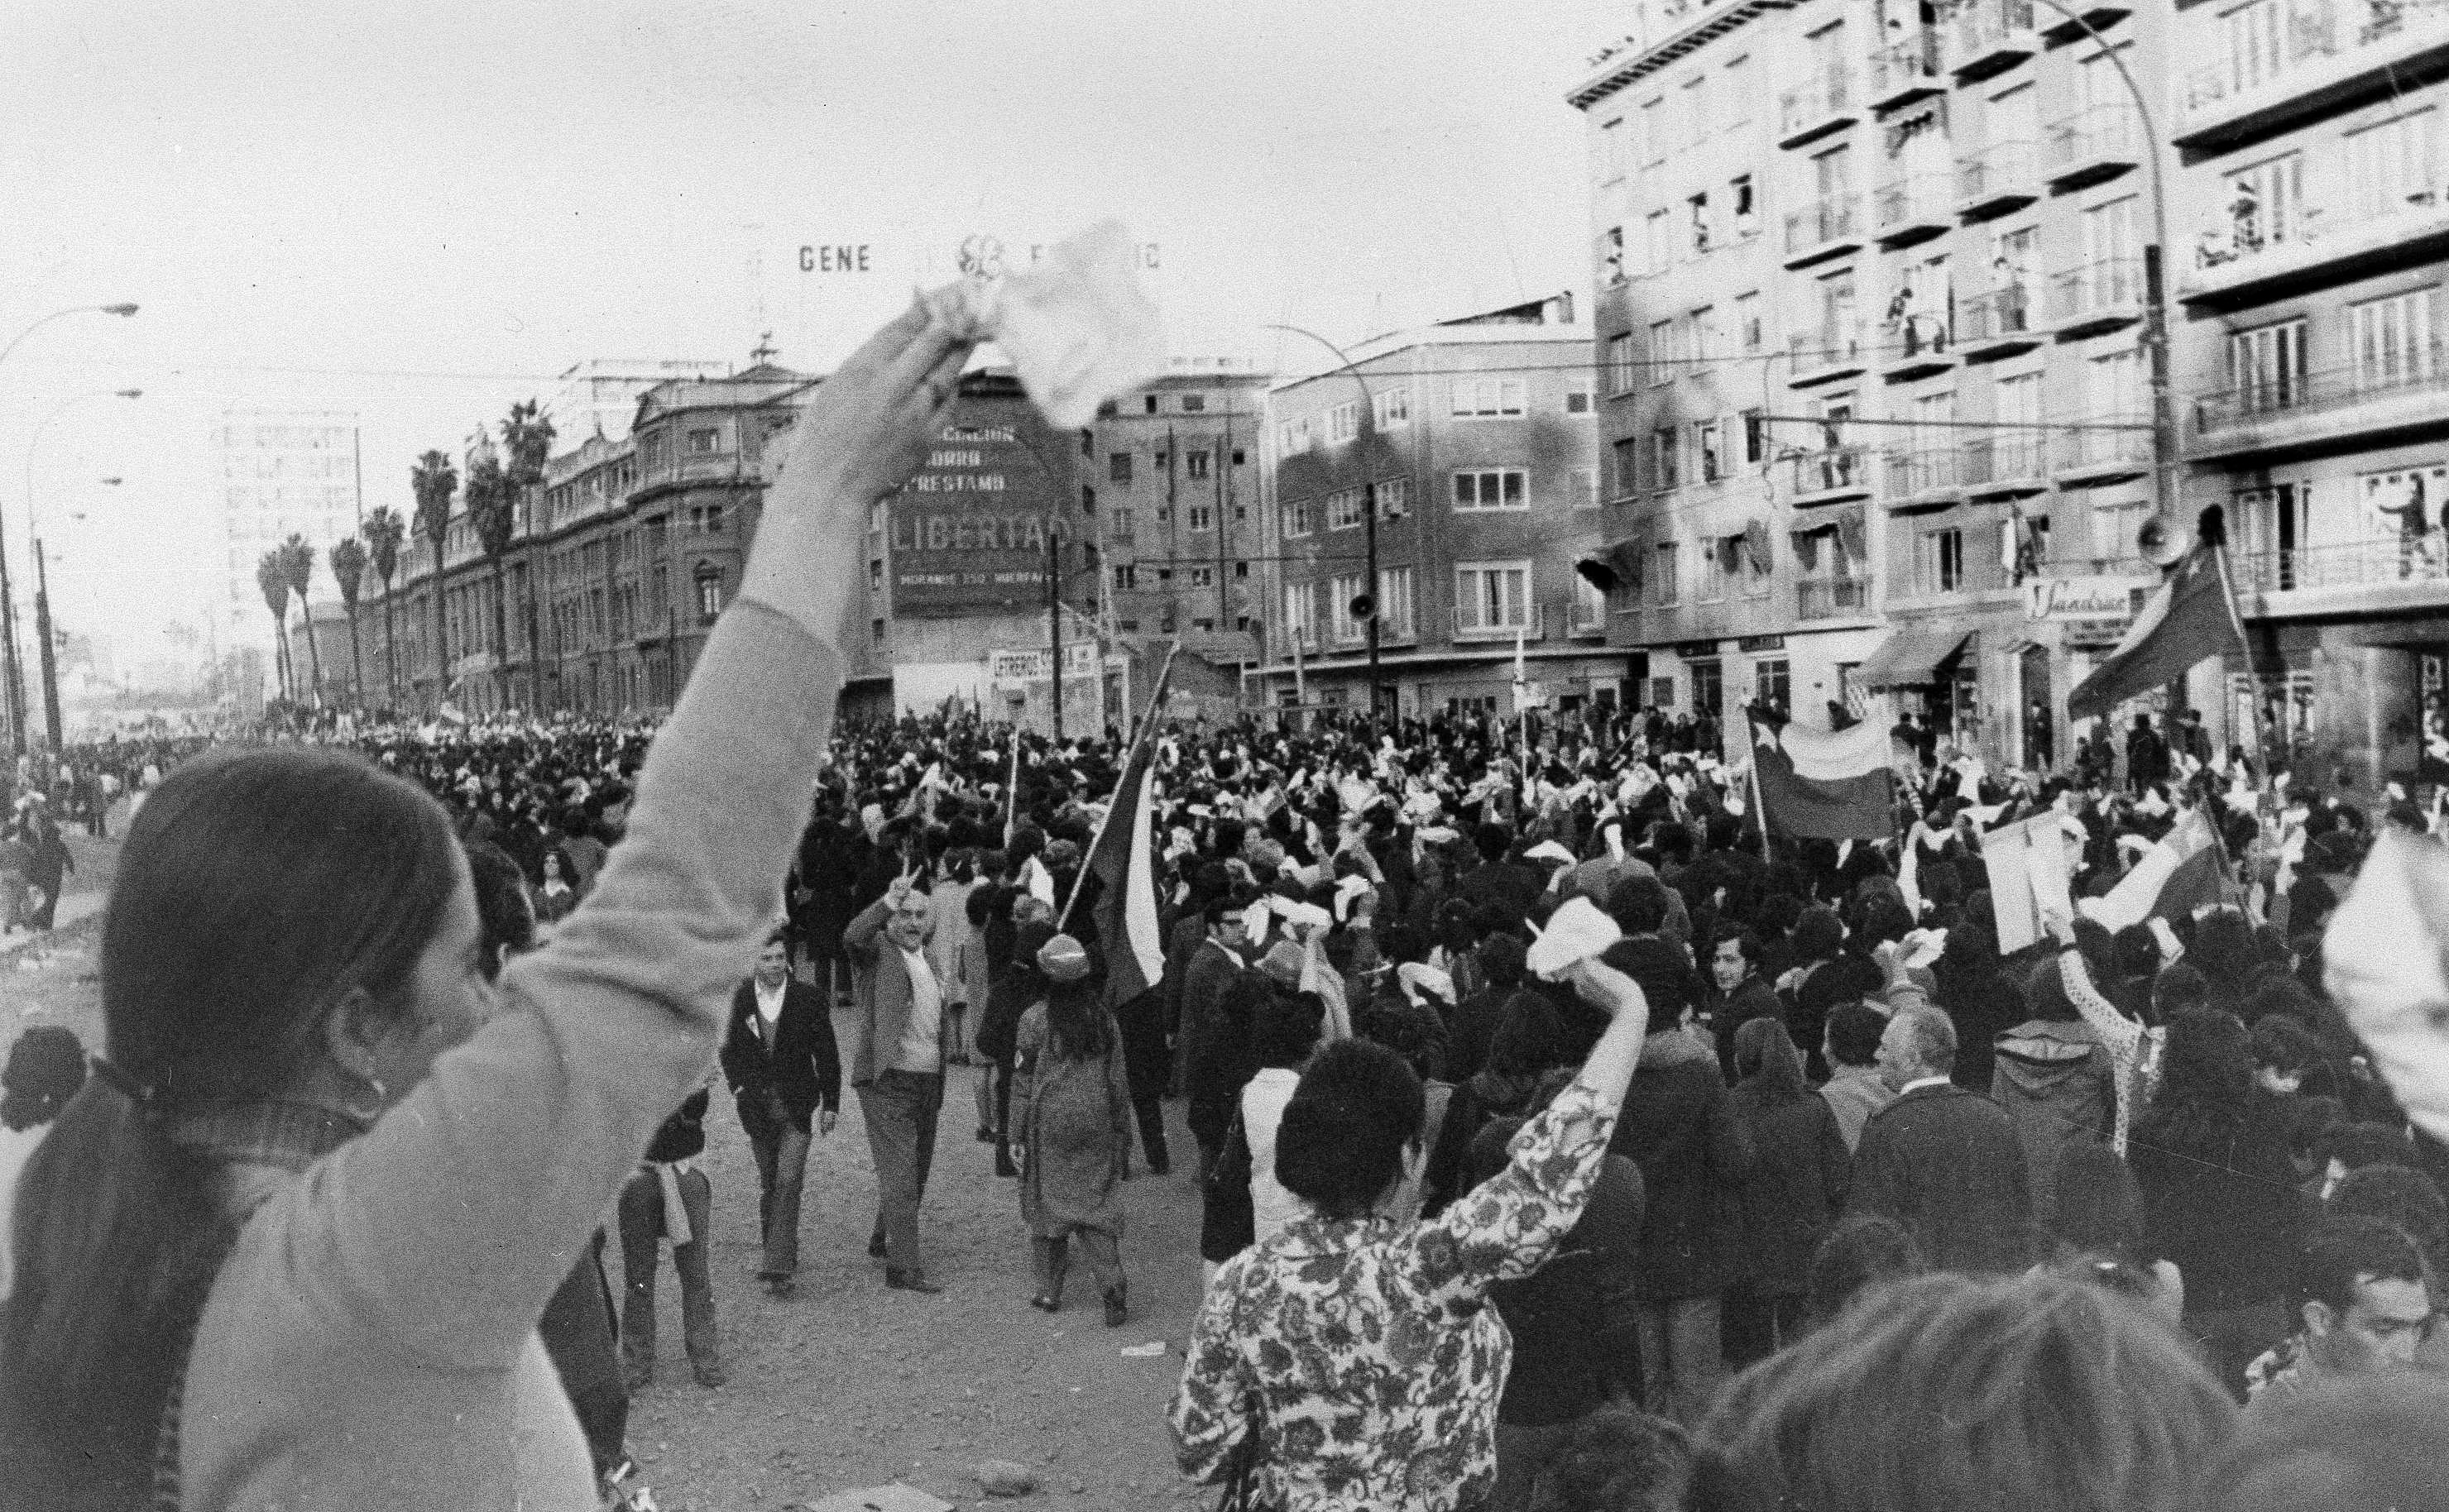 FILE - In this Sept. 5, 1973 file, women wave white handkerchiefs demanding the resignation of President Salvador Allende in Santiago, Chile. Chile marks the 45th anniversary of the coup led by Pinochet overthrowing Allende, on Wednesday, Sept. 11, 2018. (AP Photo, File)